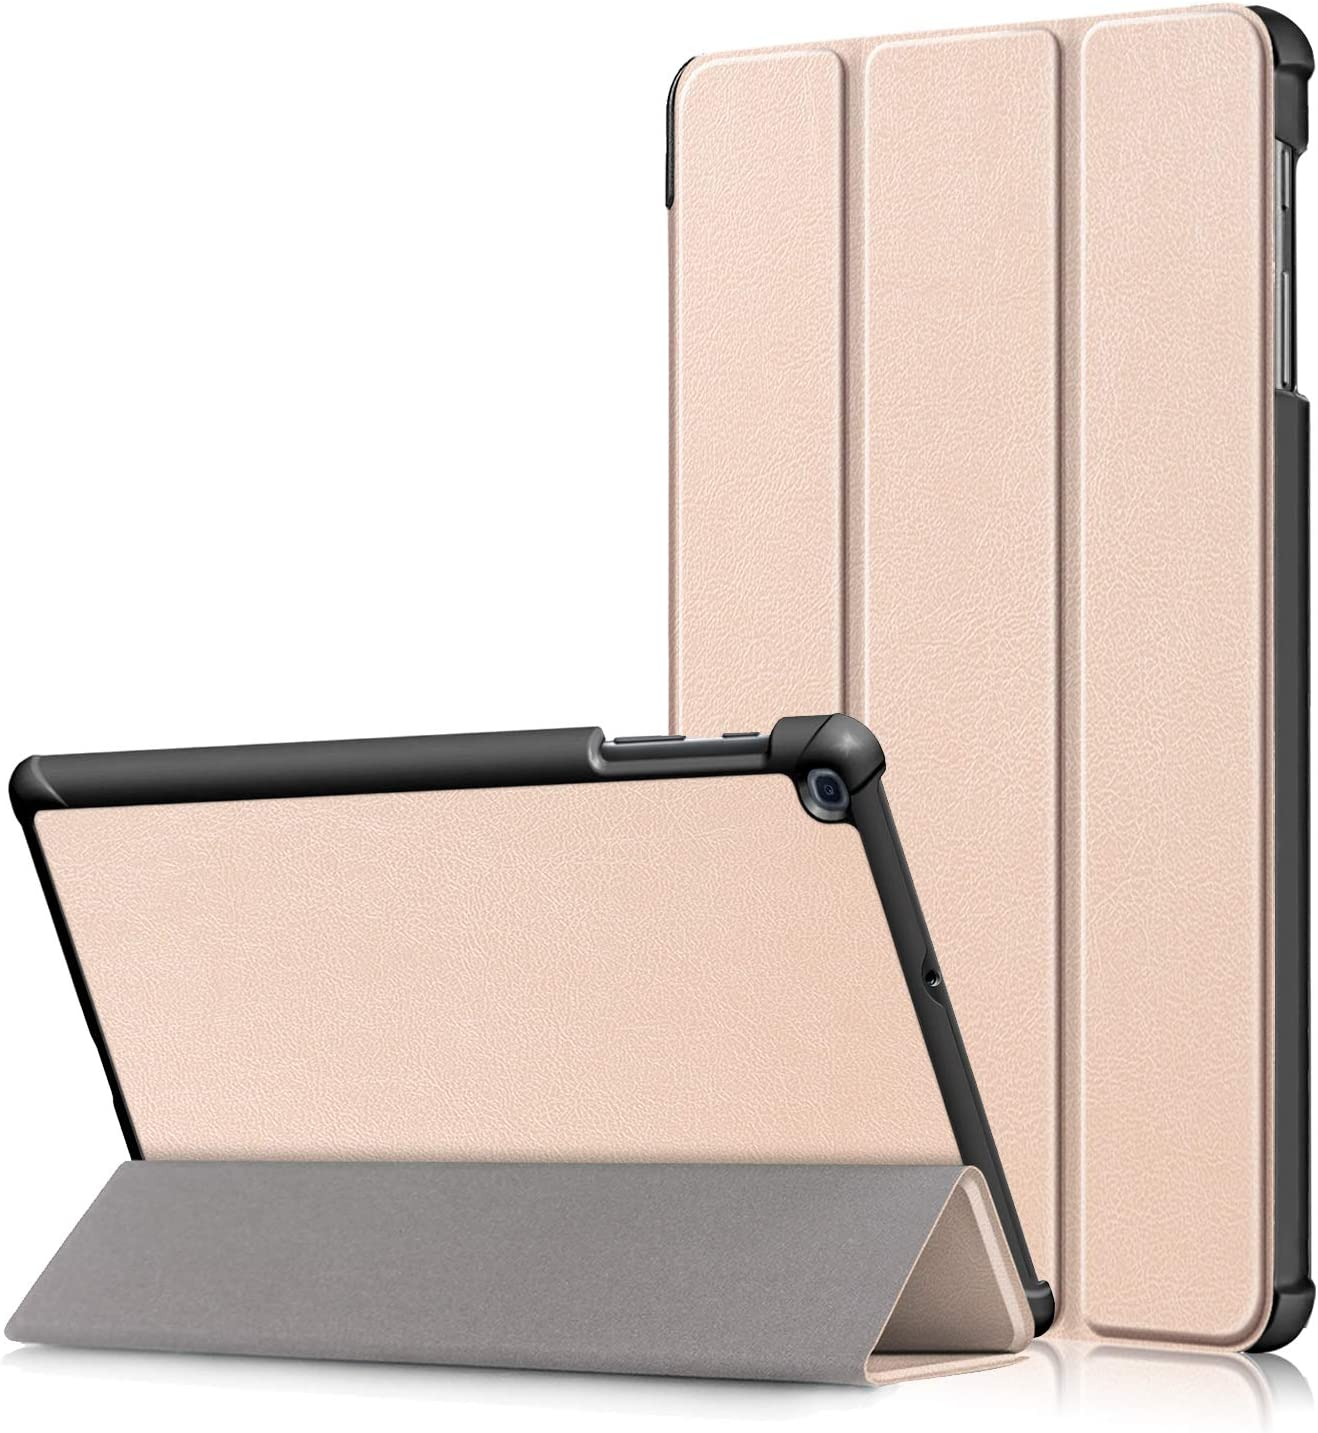 Shinyzone Slim Case for Samsung Galaxy Tab A 10.1 inch 2019 T510//T515,Tri-Fold Stand Smart Case Cover with Auto Sleep//Wake Function,Premium PU Leather TPU Bumper Protective Case,Rose Gold